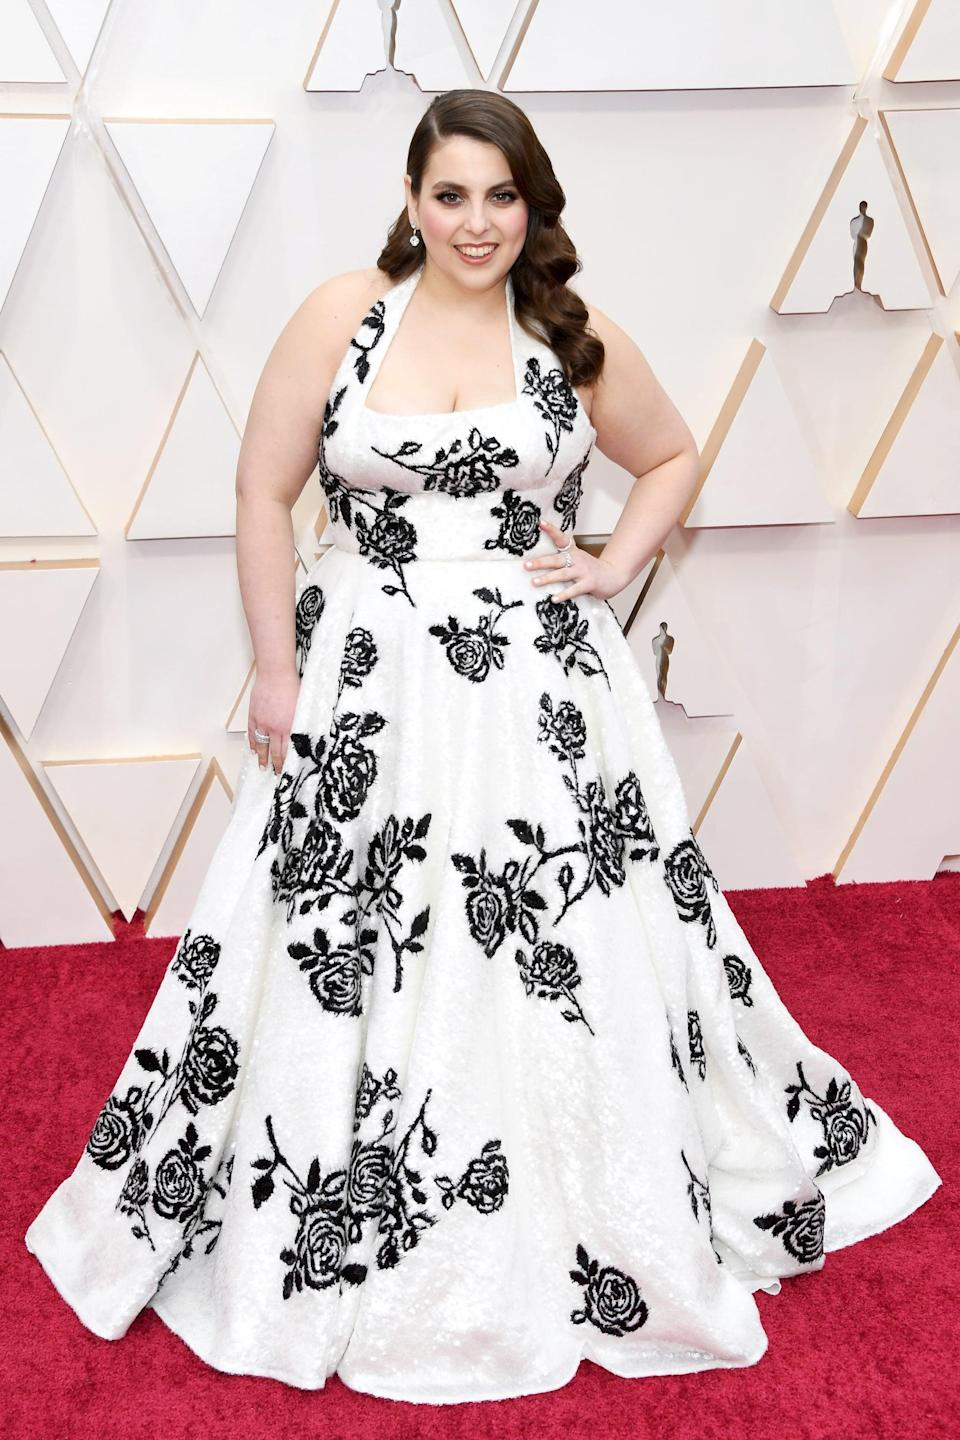 <p>The shimmer on Beanie Feldstein's Miu Miu dress is undeniable when you zoom in close on those sequins!</p>